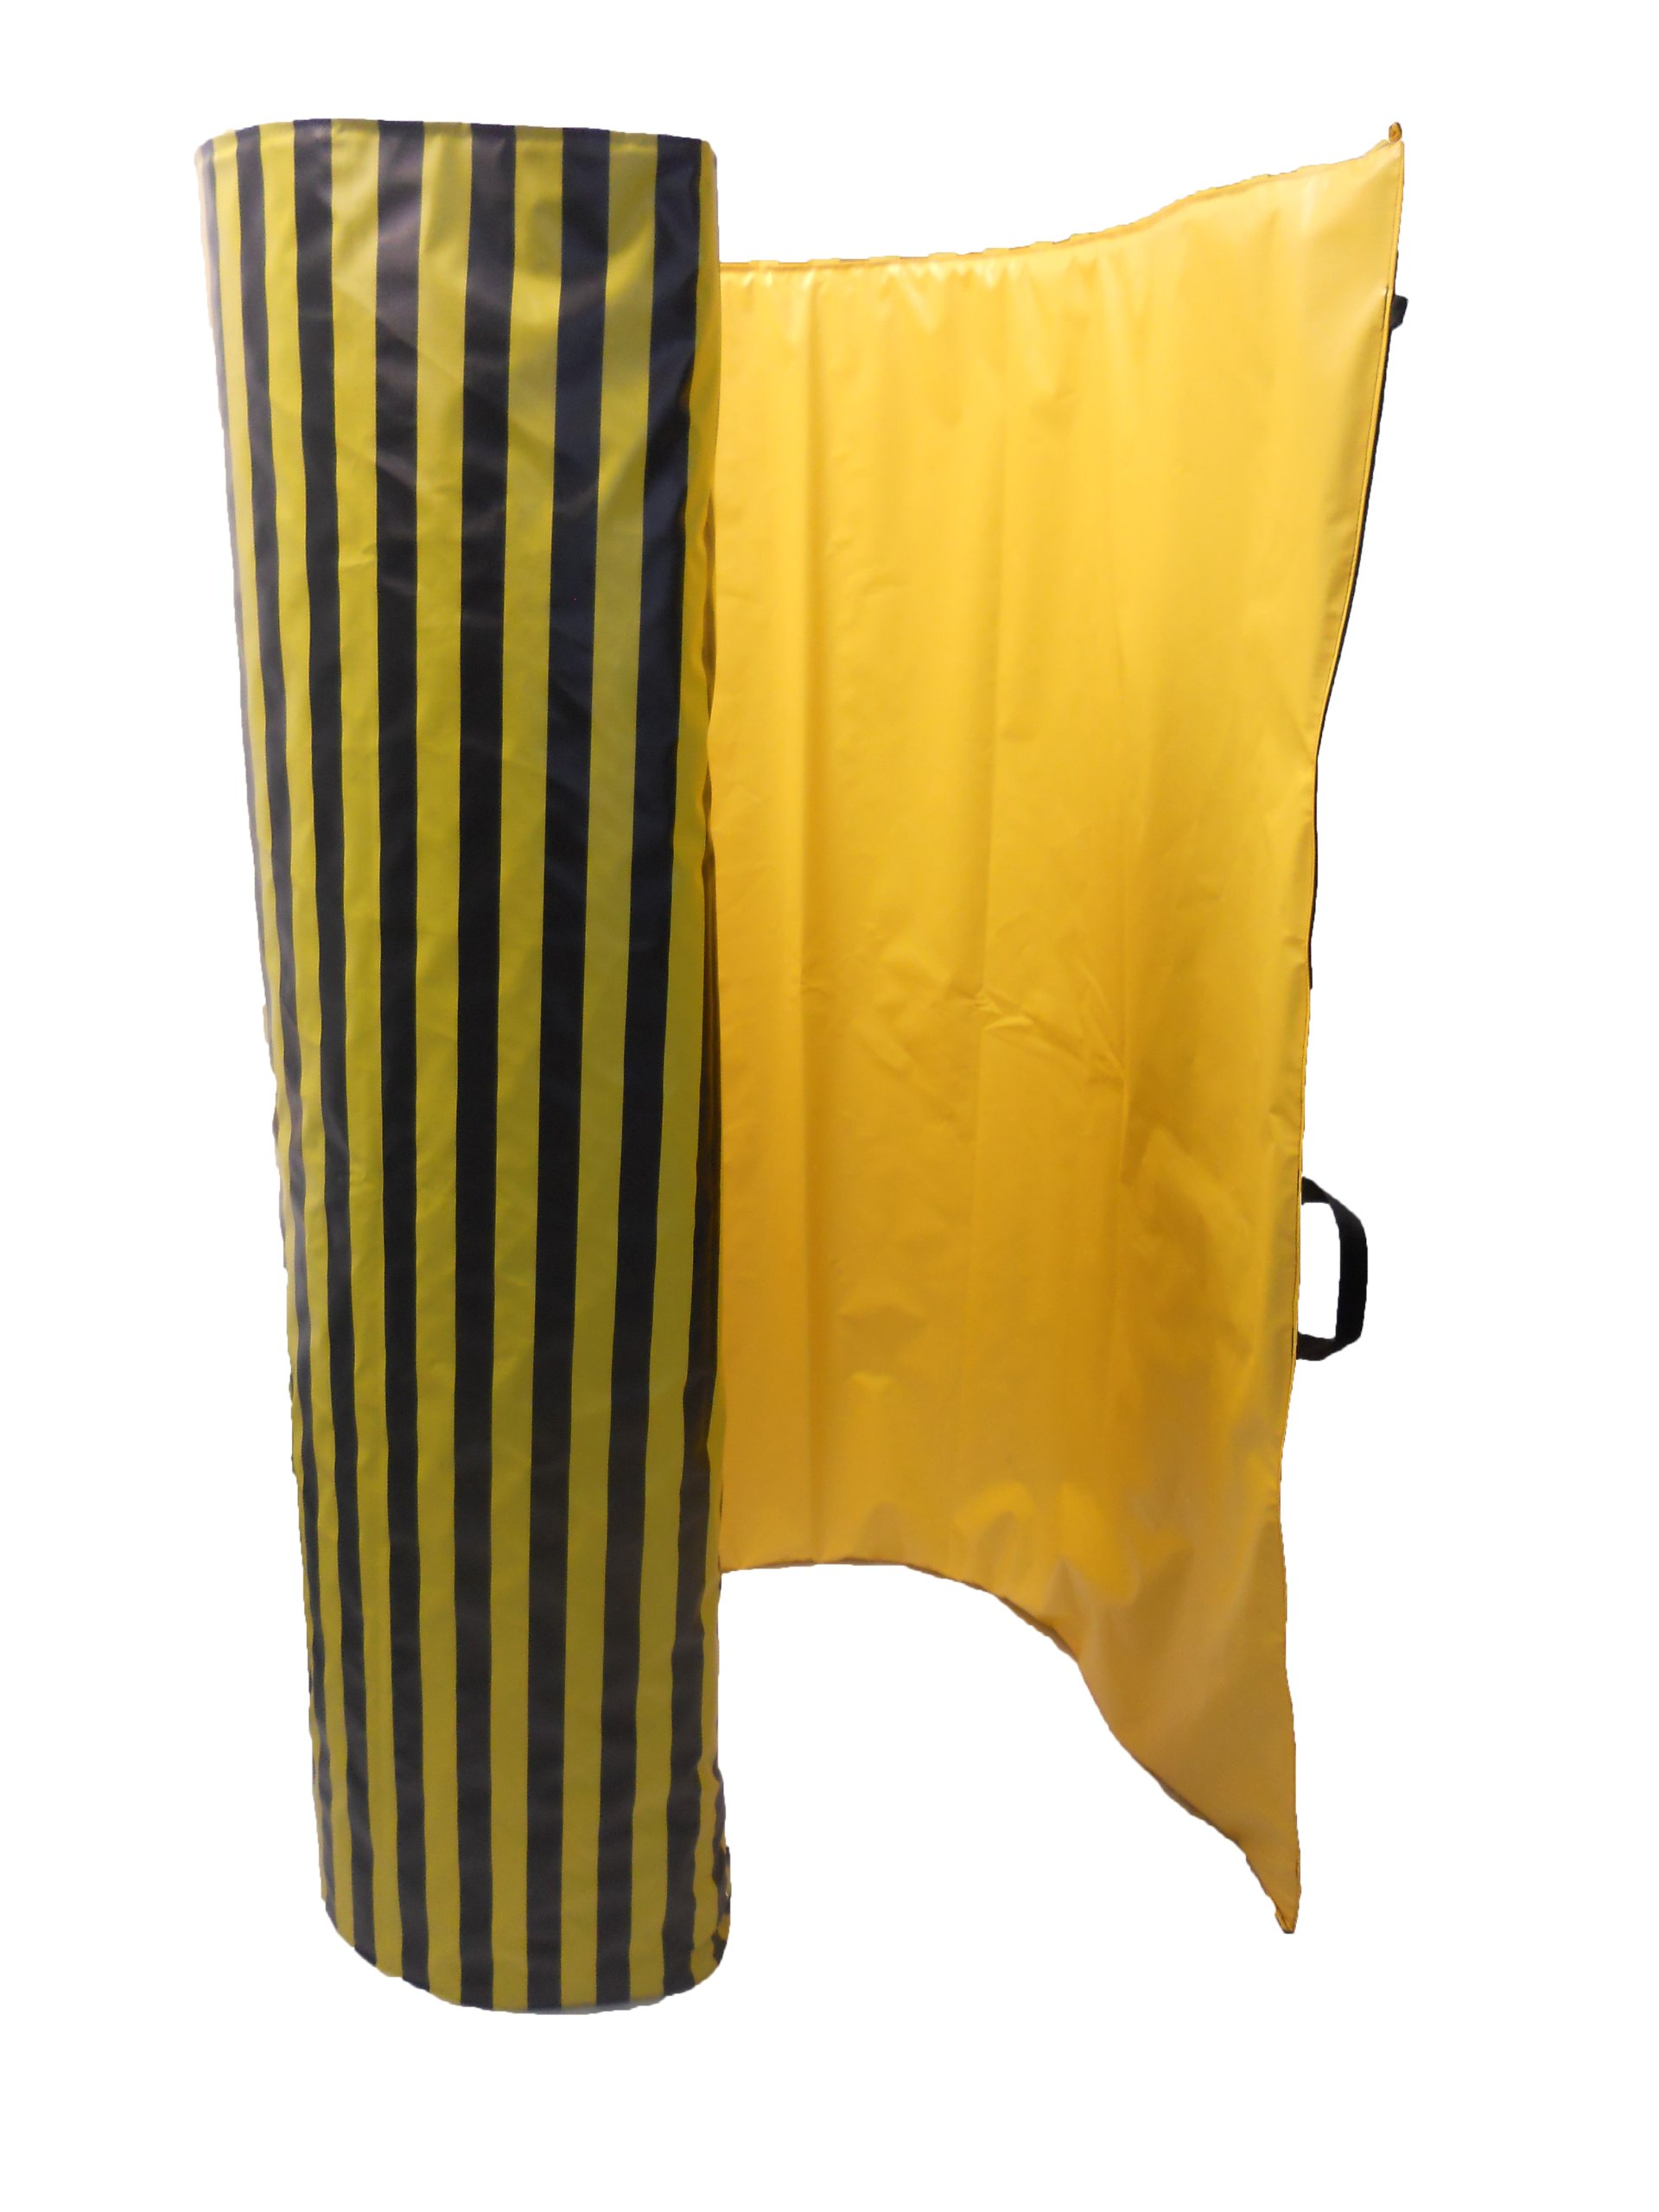 Singer Safety Safety-Stripe Vinyl Roll-Up Safety Screen, 9' Width x 6' Height